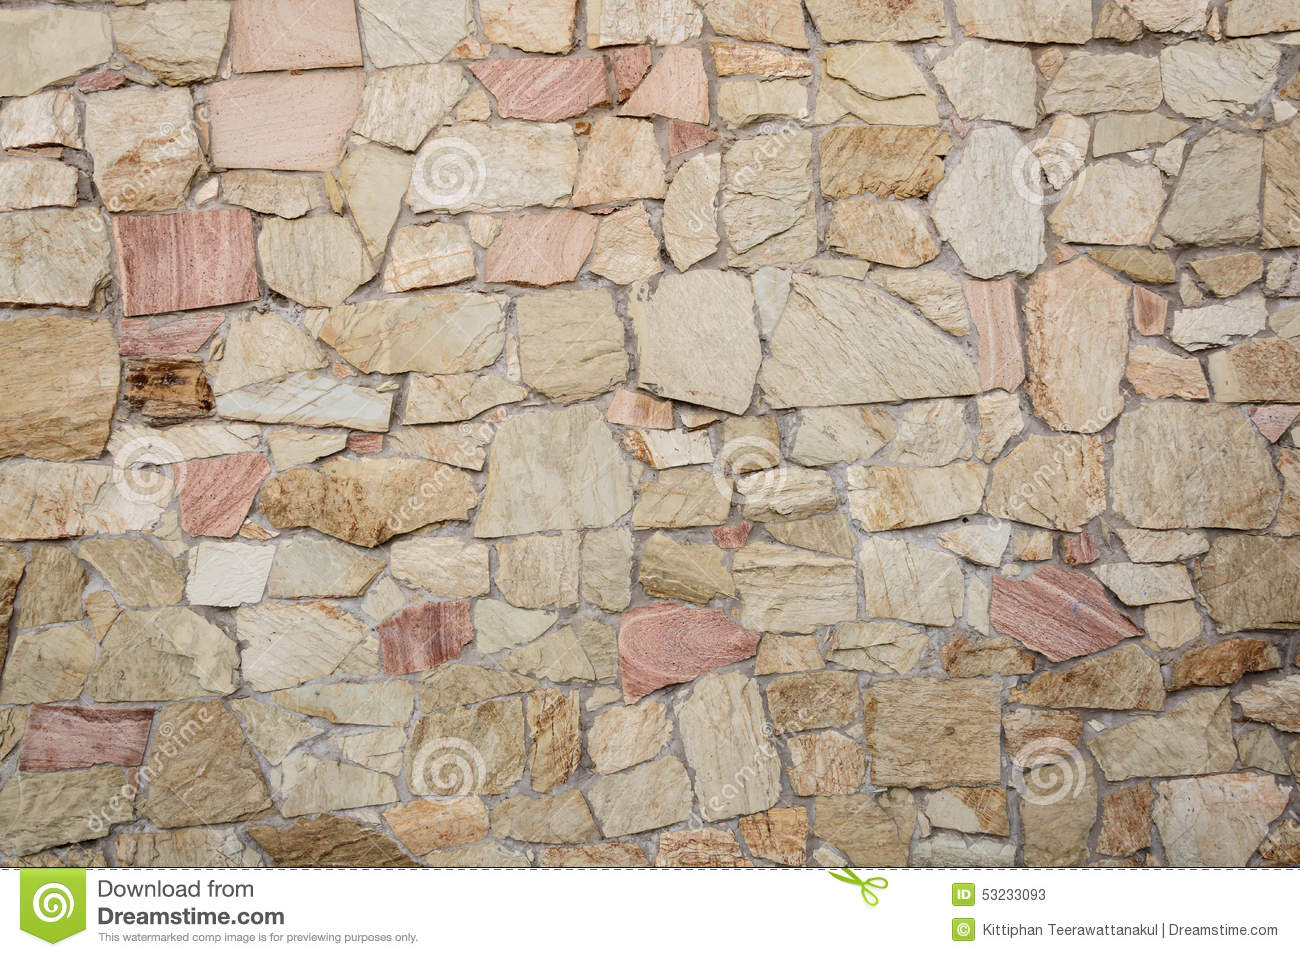 Pared de piedra decorativa texturizada foto de archivo - Piedra decorativa pared ...